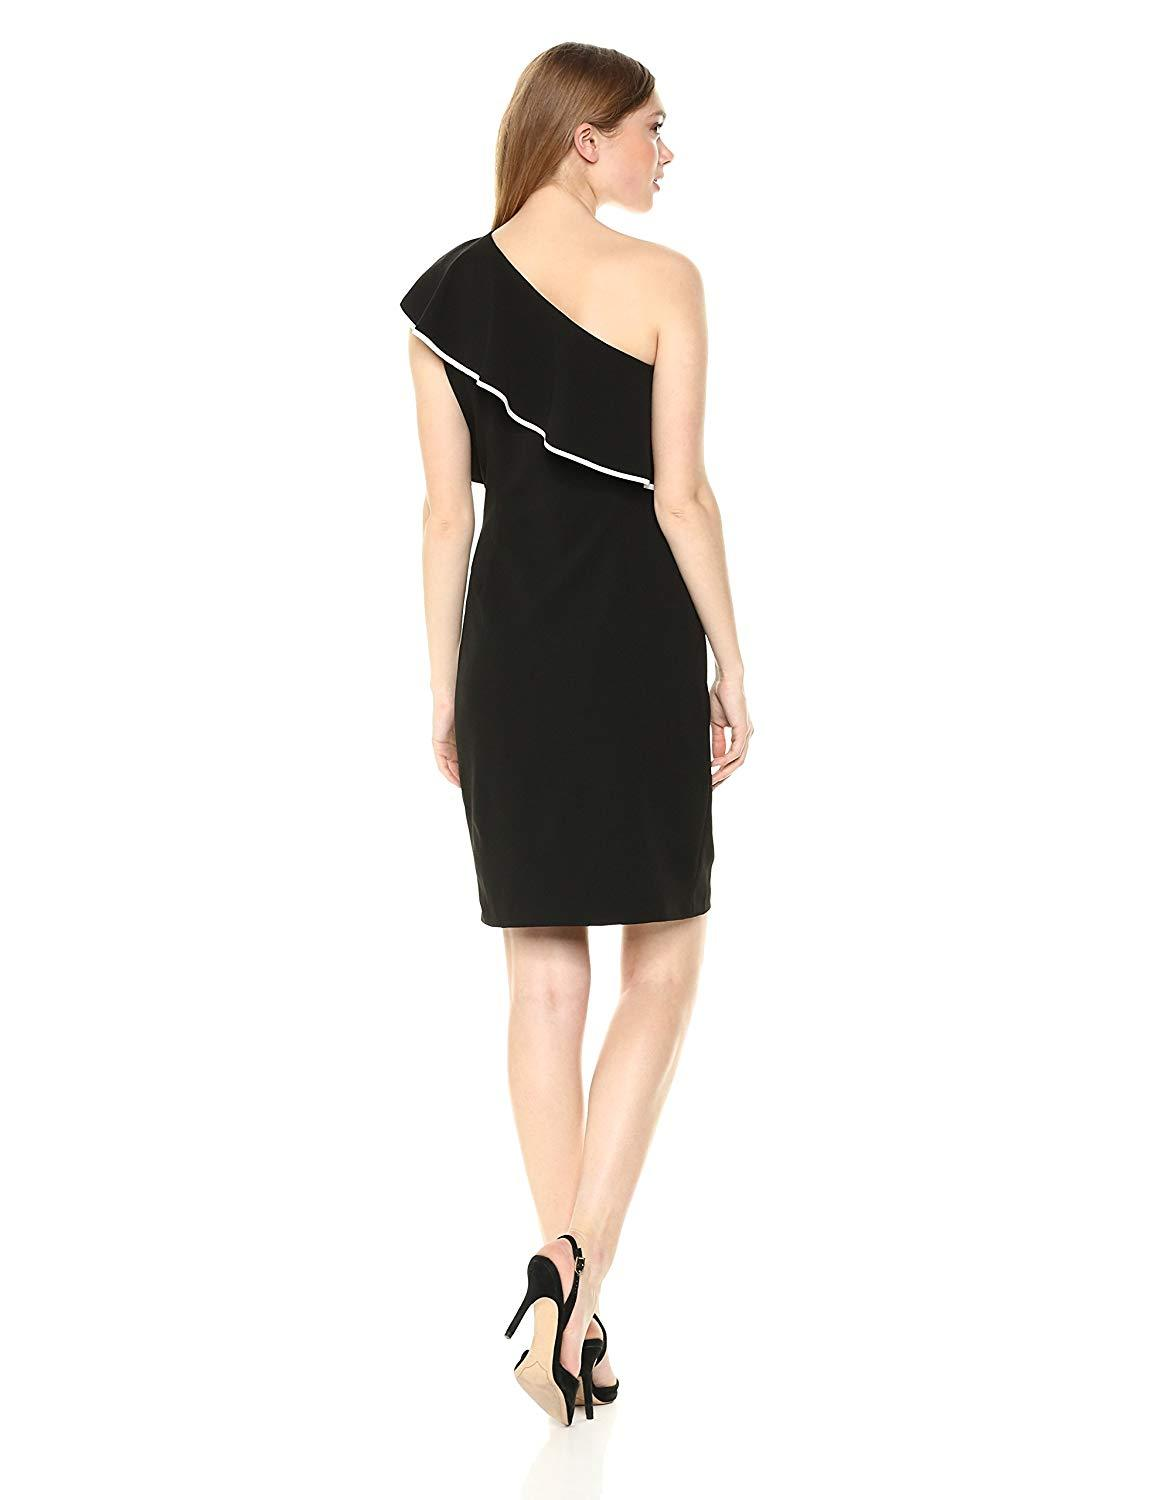 Adrianna Papell - AP1D102025 One Shoulder Popover Cocktail Dress In Black and White